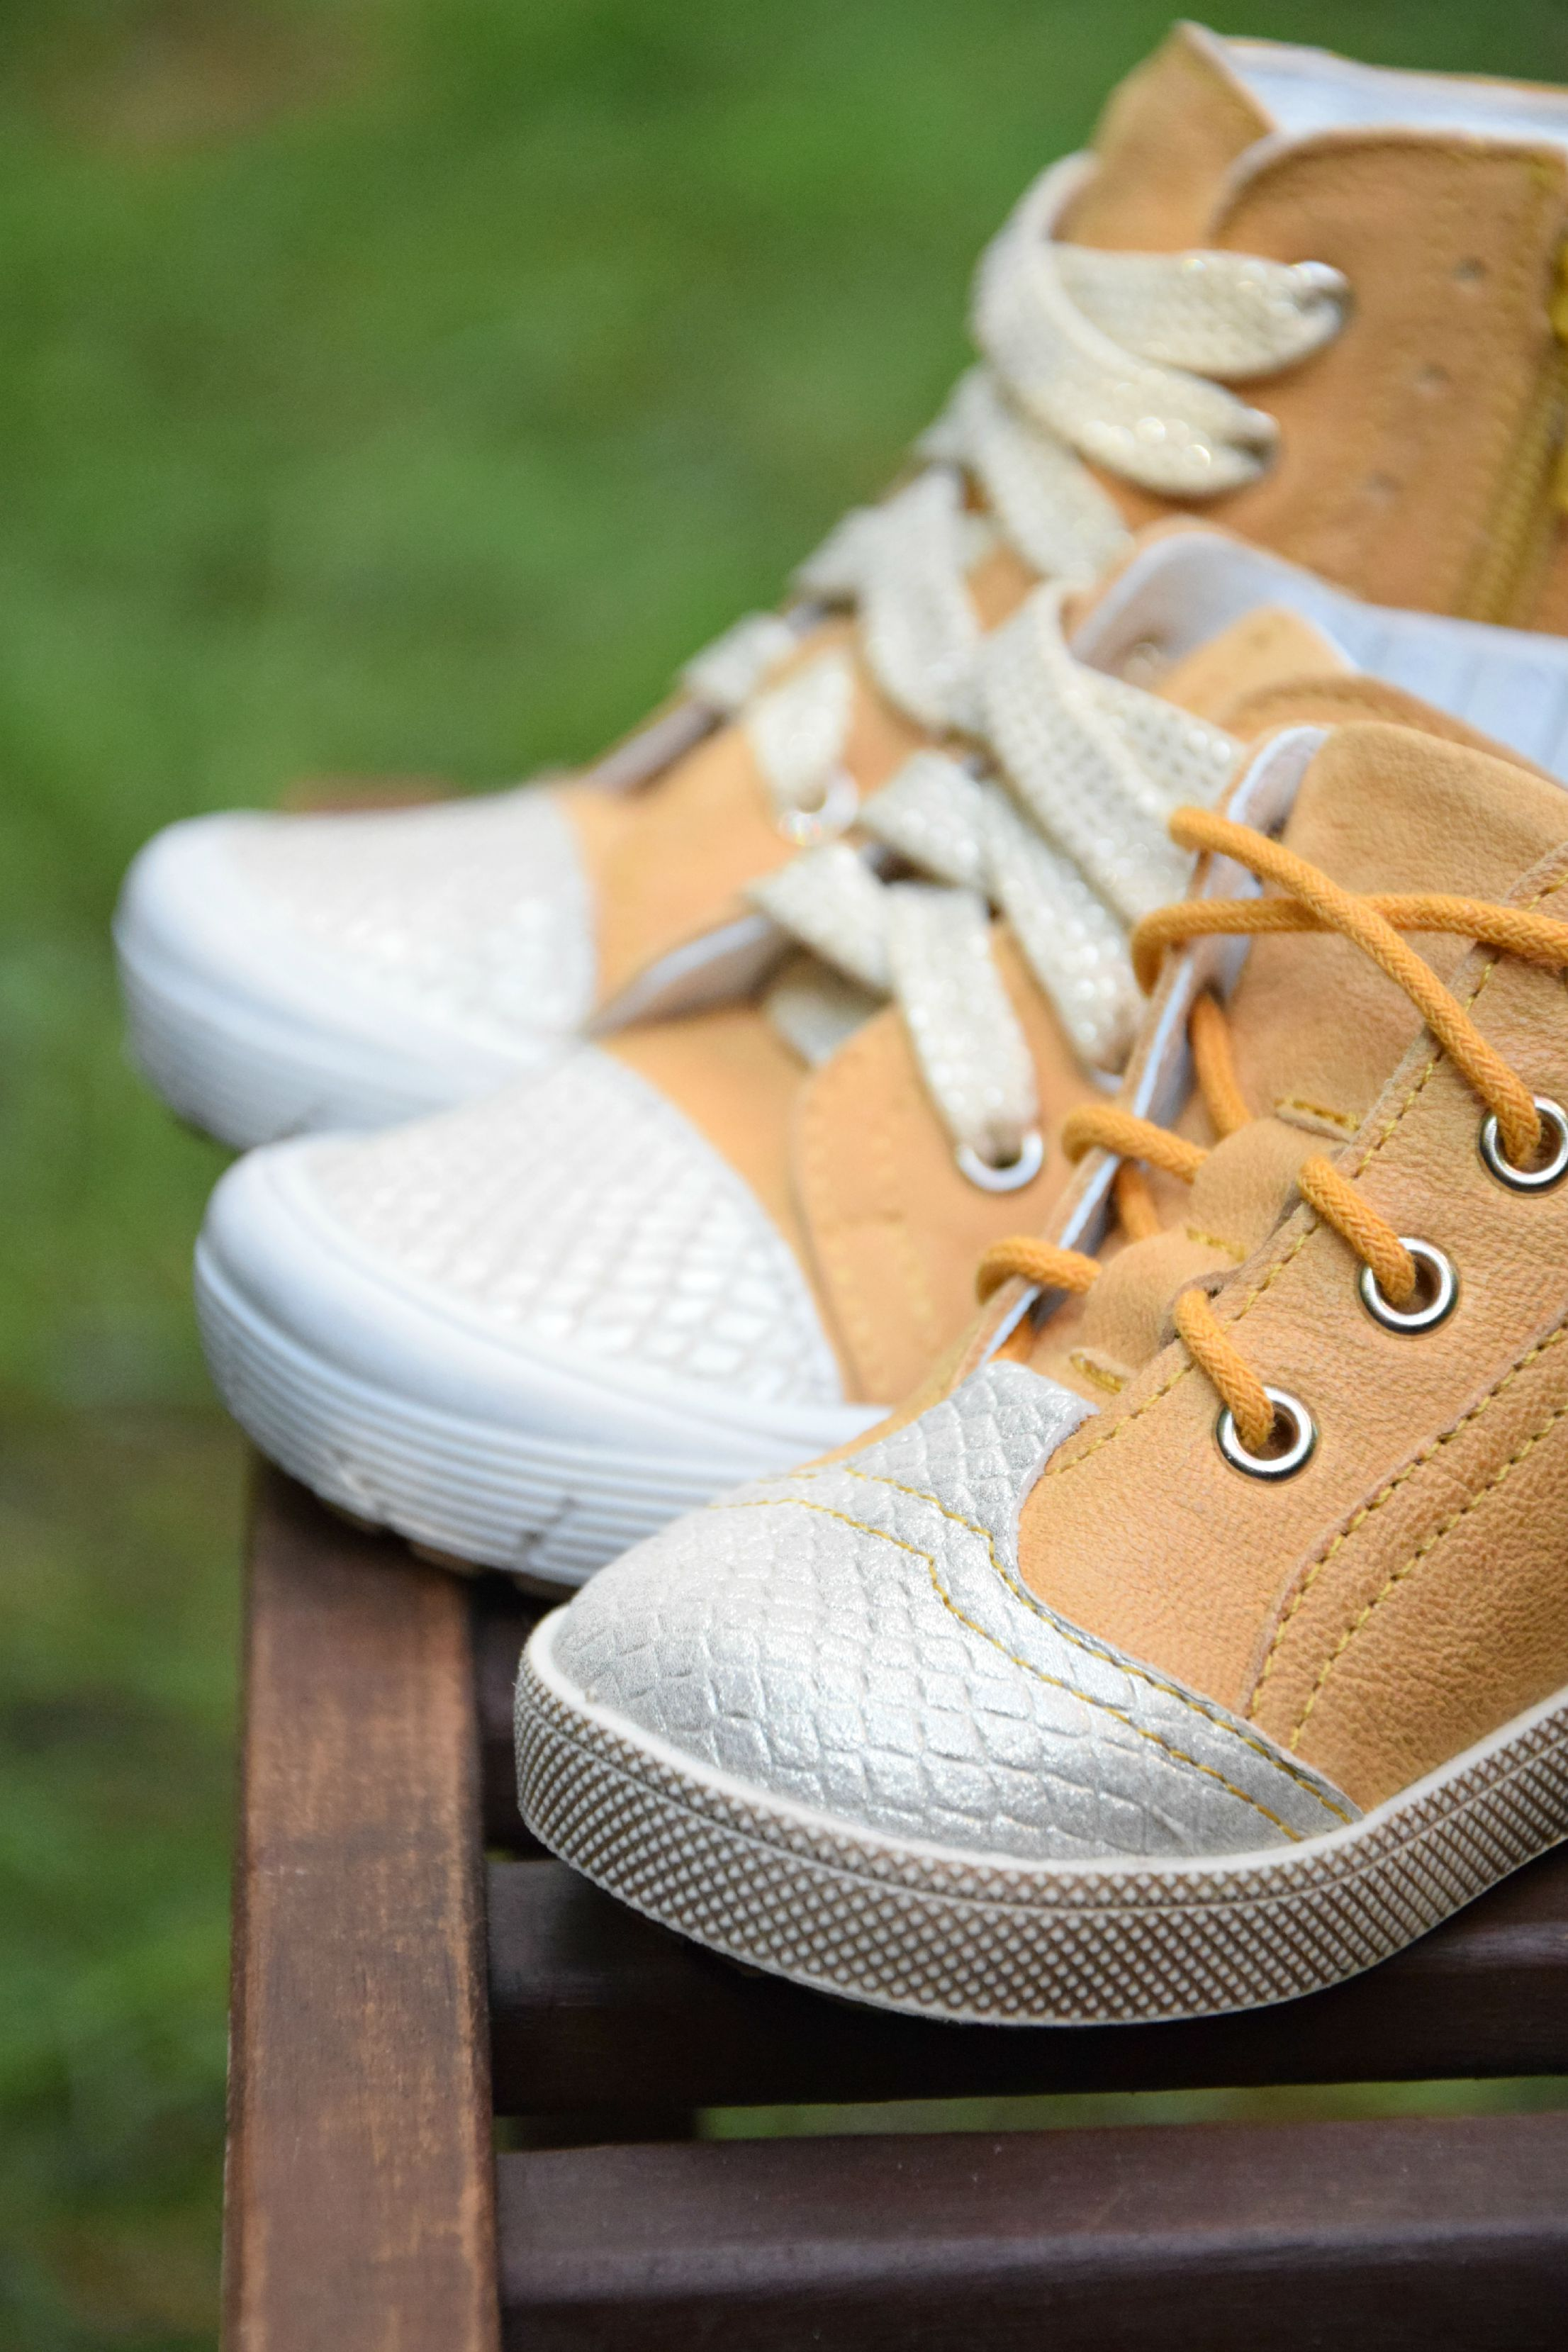 ec882bc4c Handmade children shoes by Emel - made in Europe - Yellow shoes - sneakers  - leather shoes